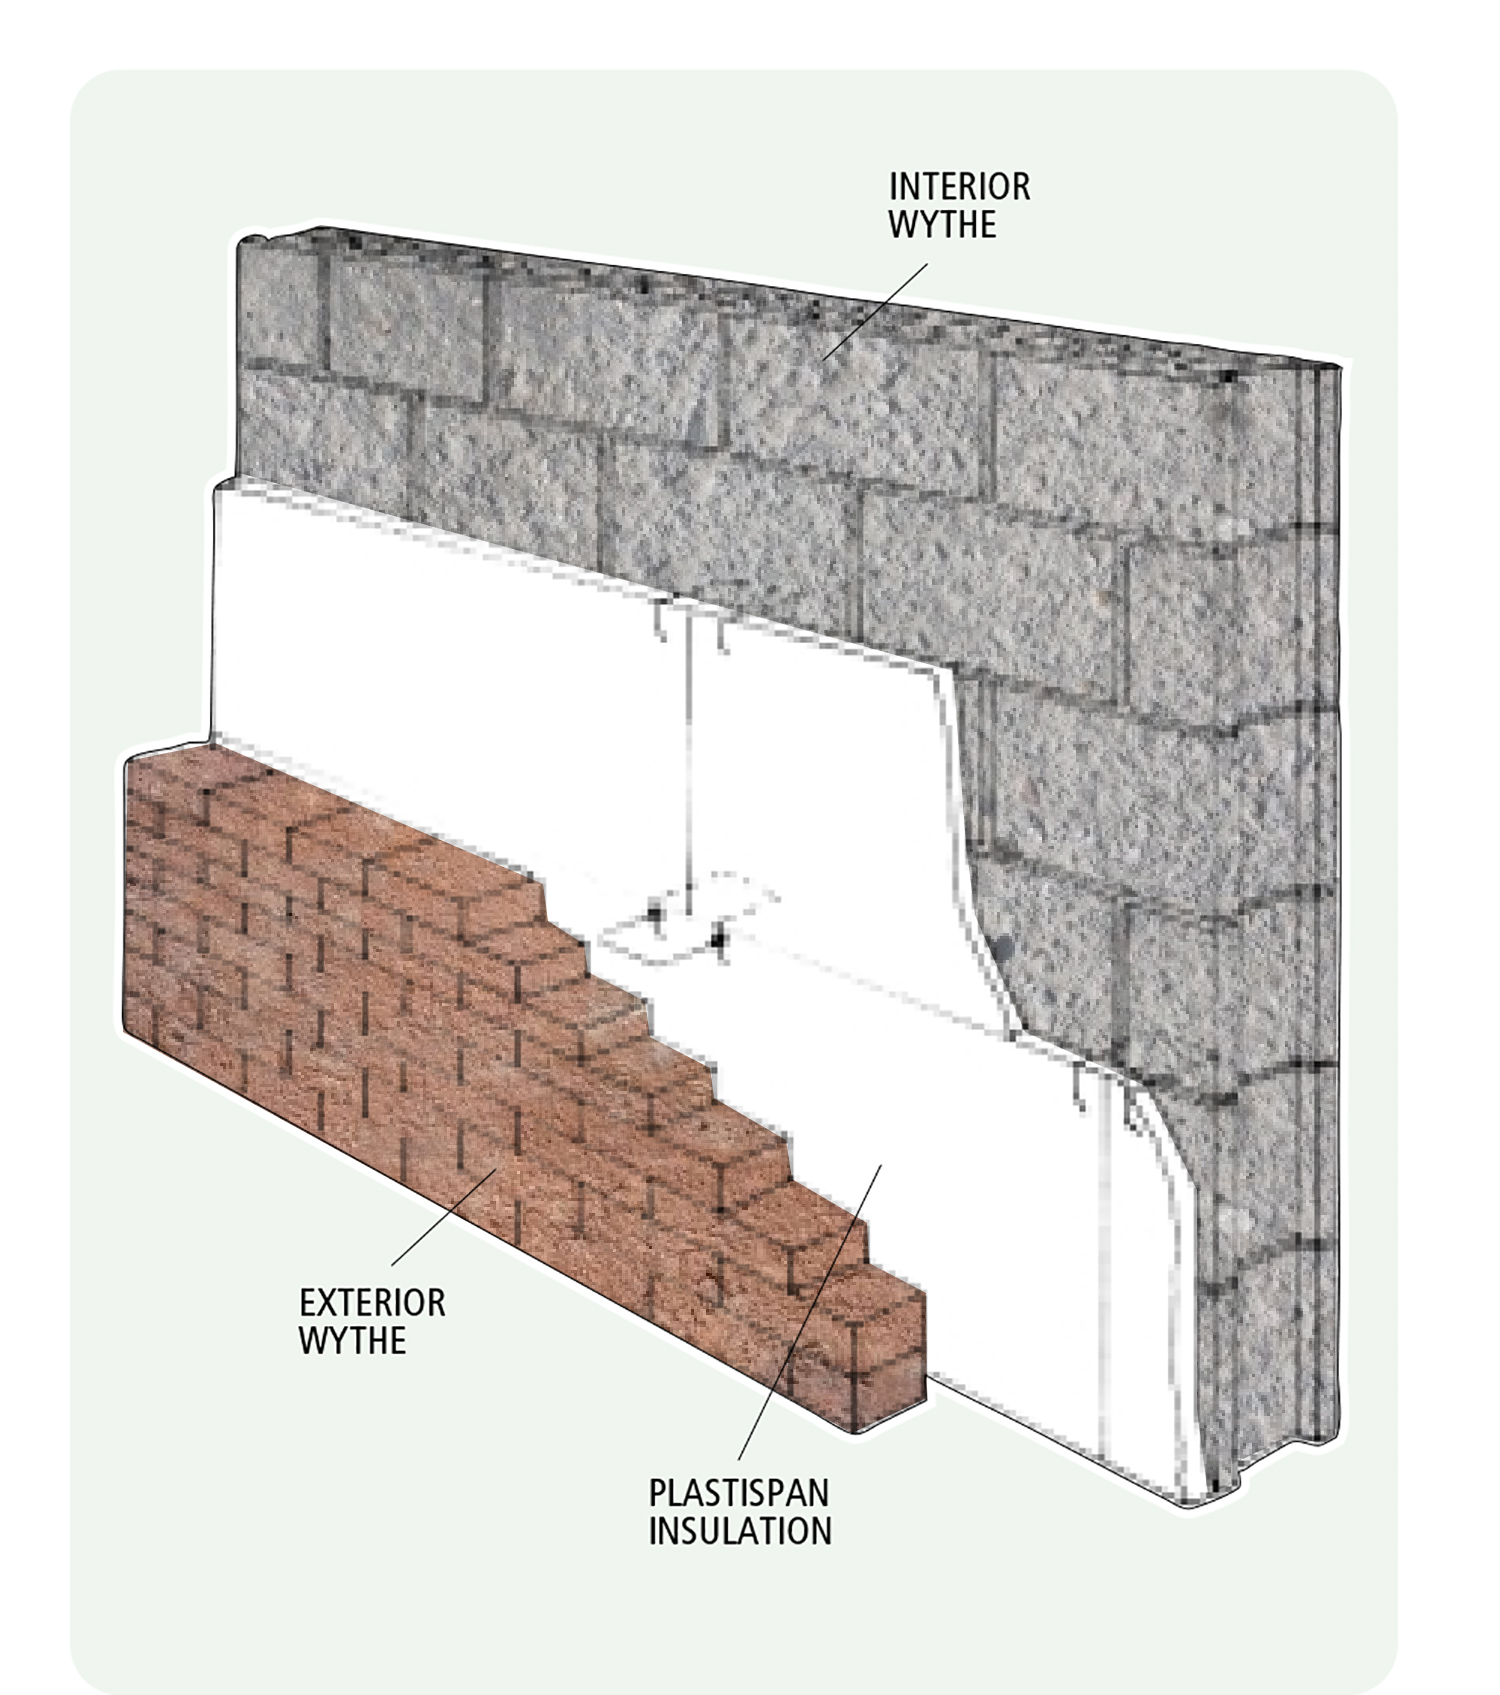 Cavity walls using exterior insulating sheathing for for Exterior wall construction materials